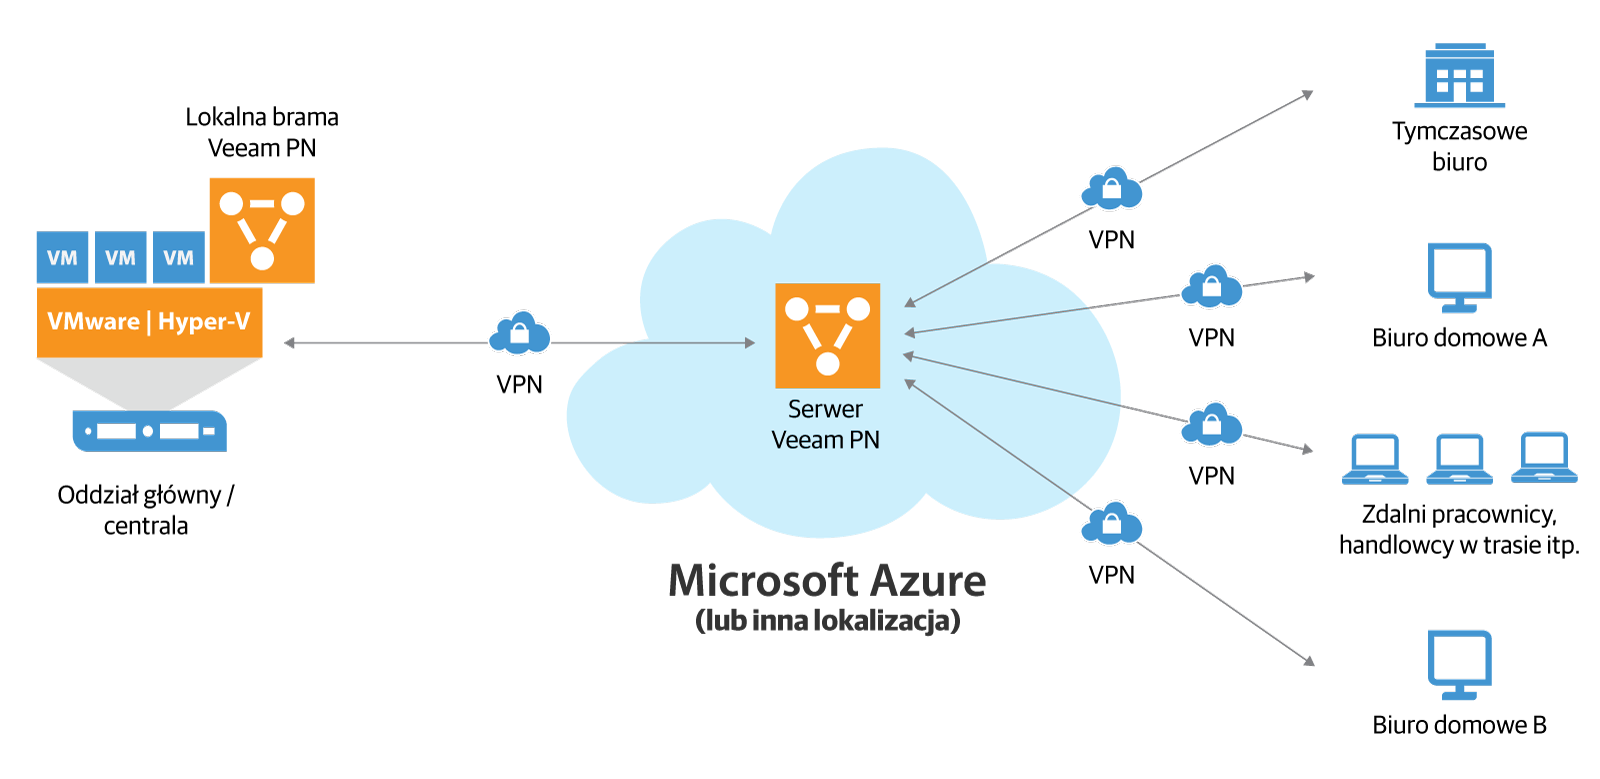 veeam_pn_for_microsoft_azure_pl.png